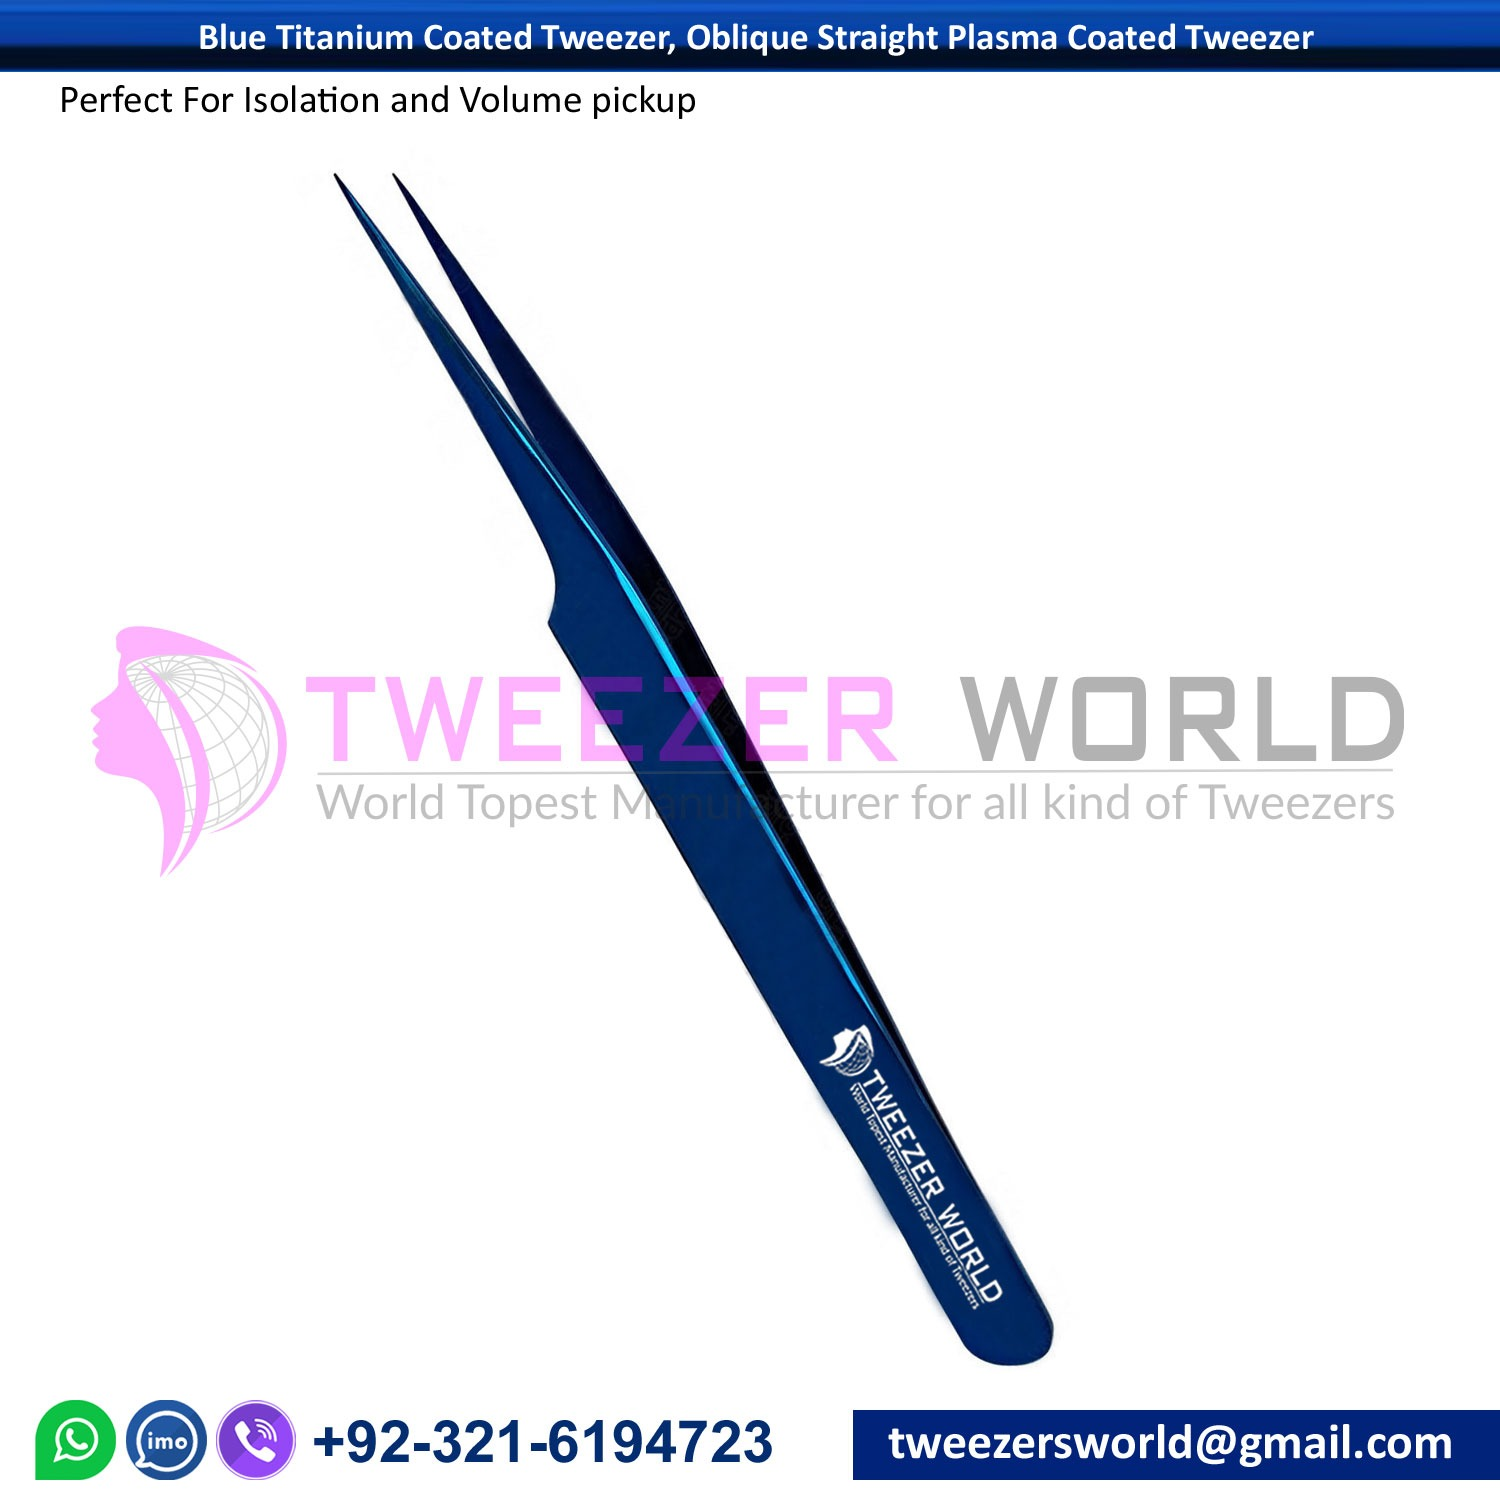 Blue Titanium Coated Tweezer, Oblique Straight Plasma Coated Tweezer